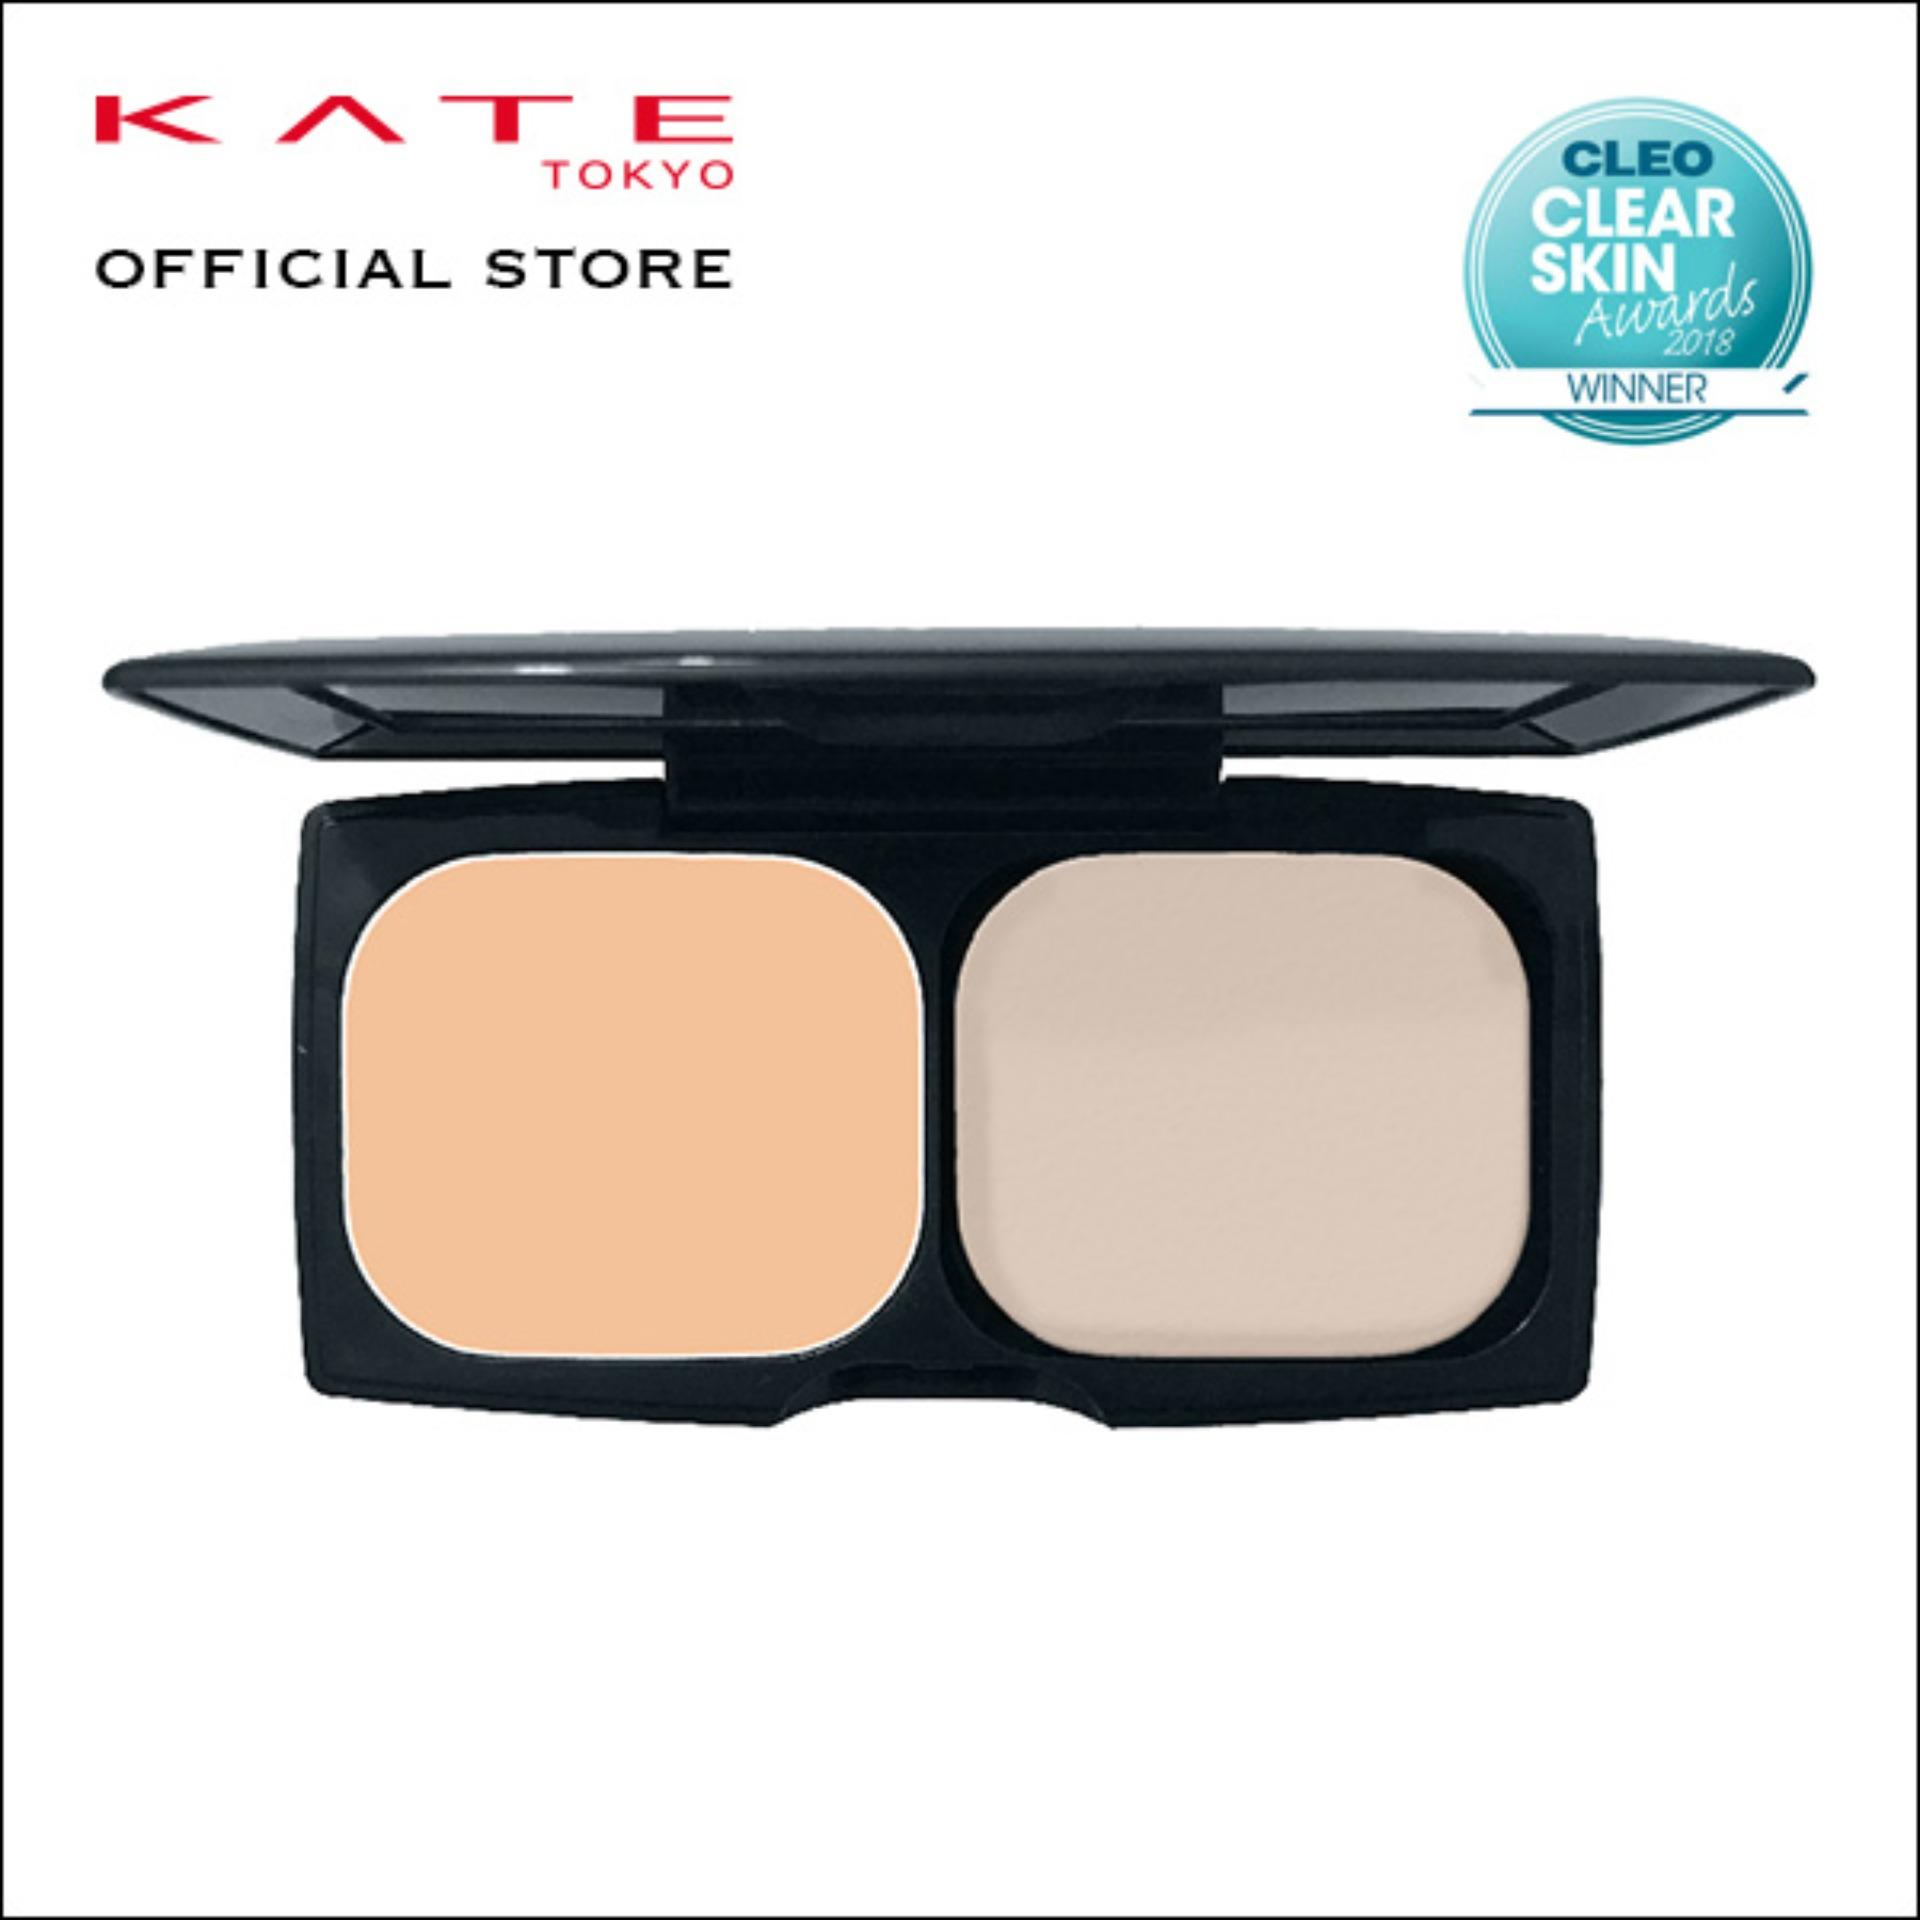 Kate Secret Skin Maker Zero Powder Foundation 02 By Kate Tokyo.